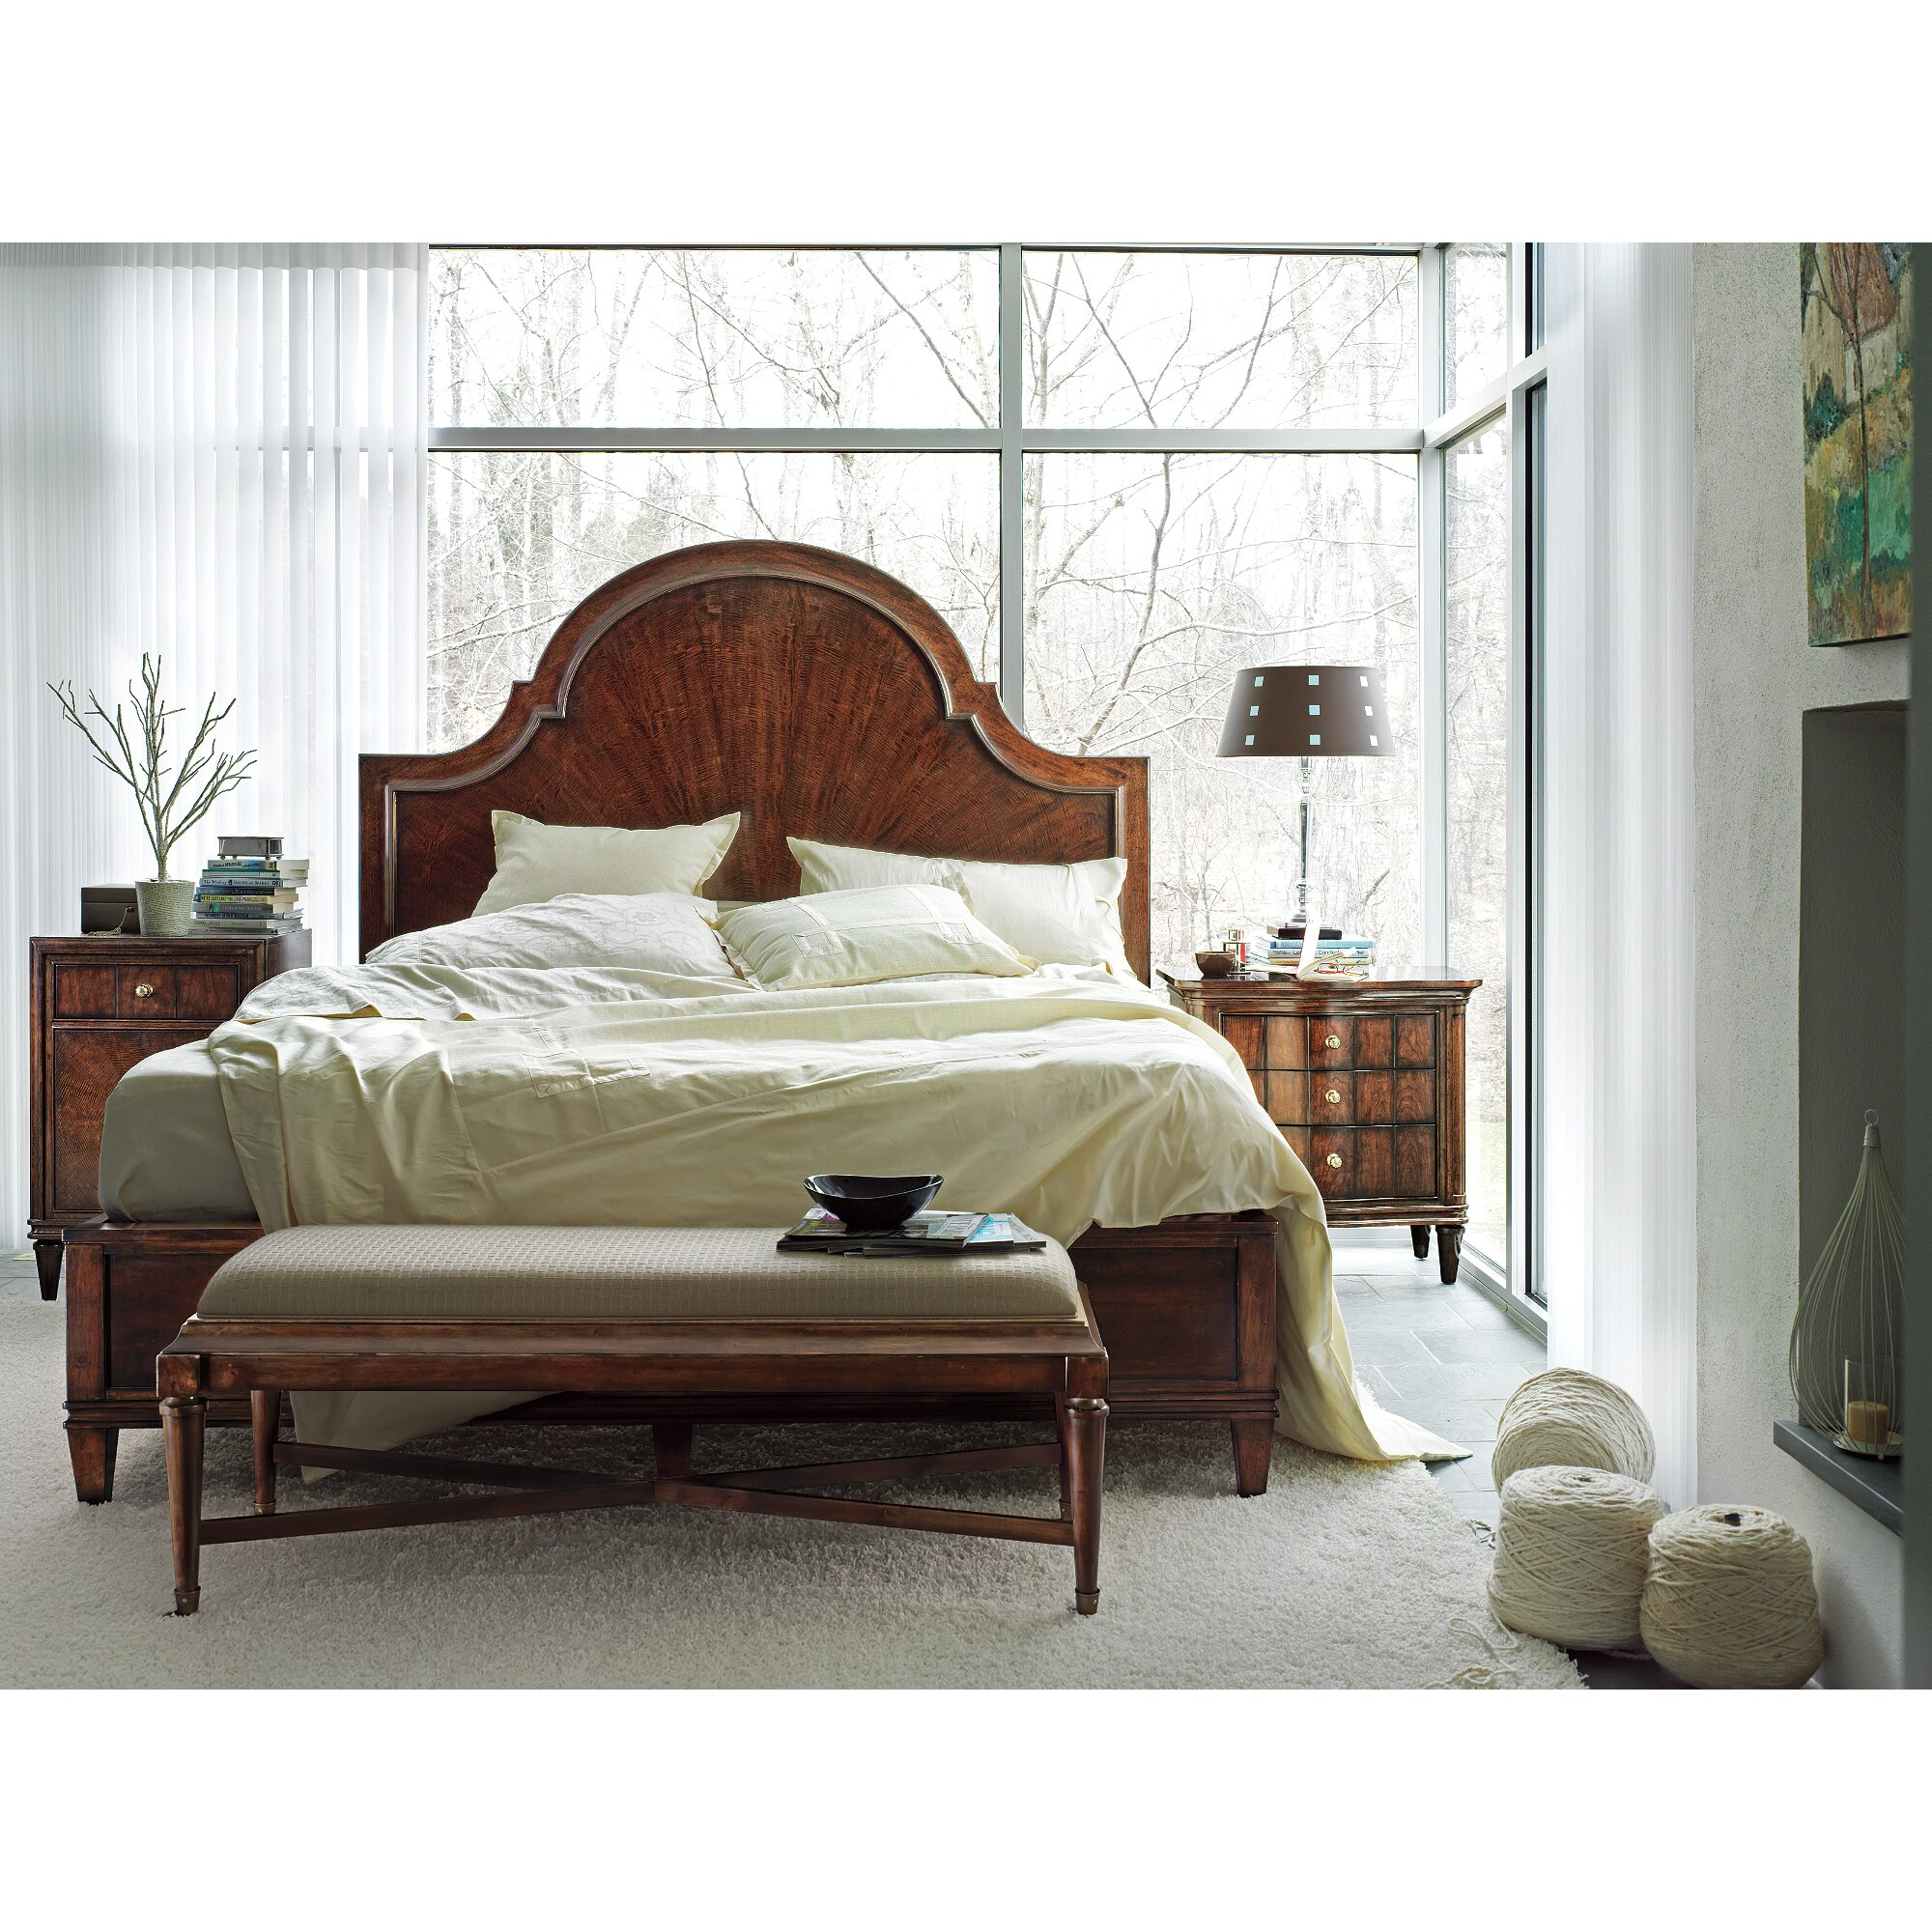 stanley avalon heights panel bed reviews wayfair. Black Bedroom Furniture Sets. Home Design Ideas